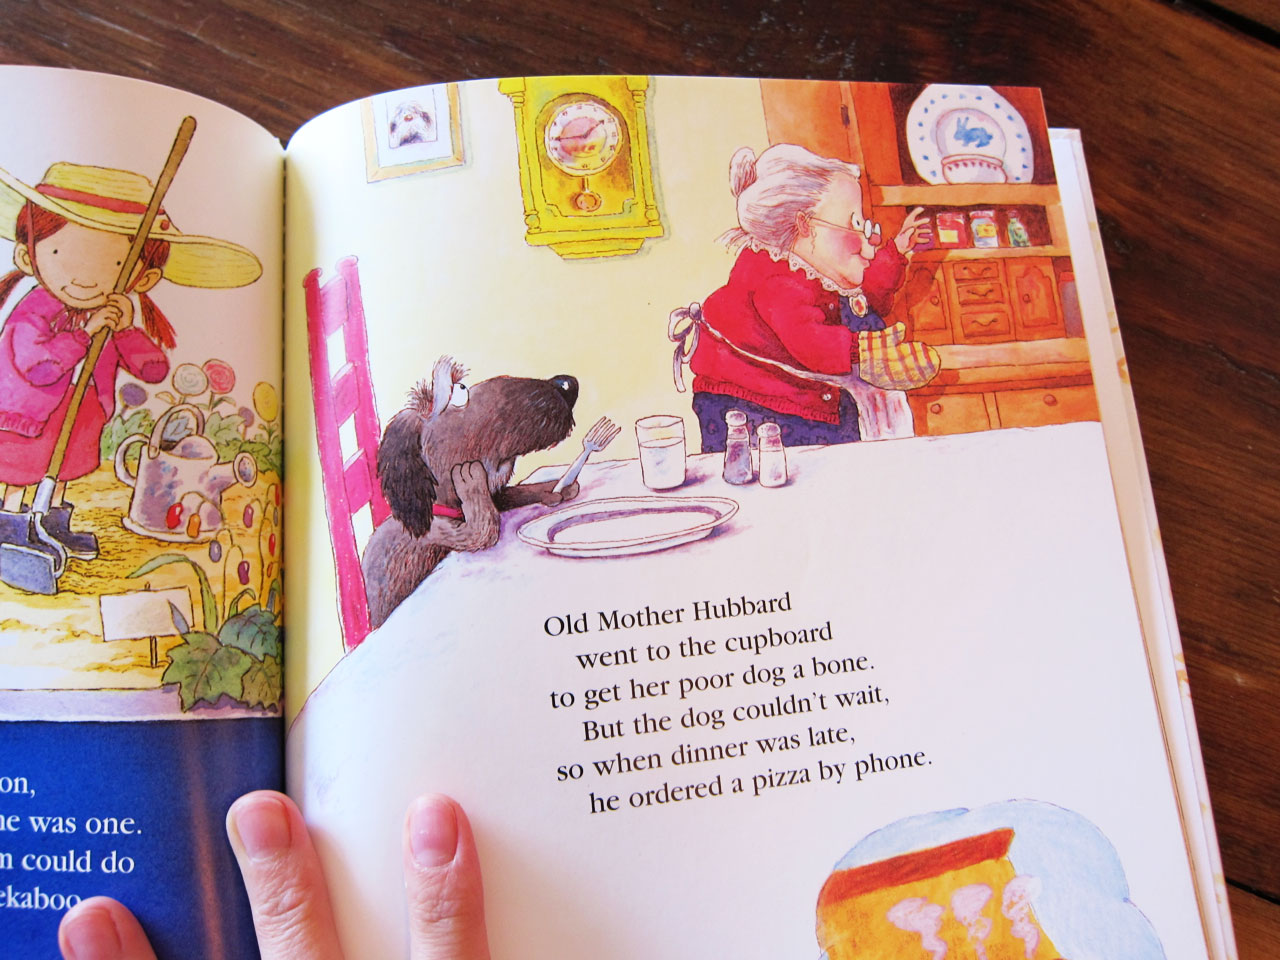 Old Mother Hubbard by Bruce Lansky